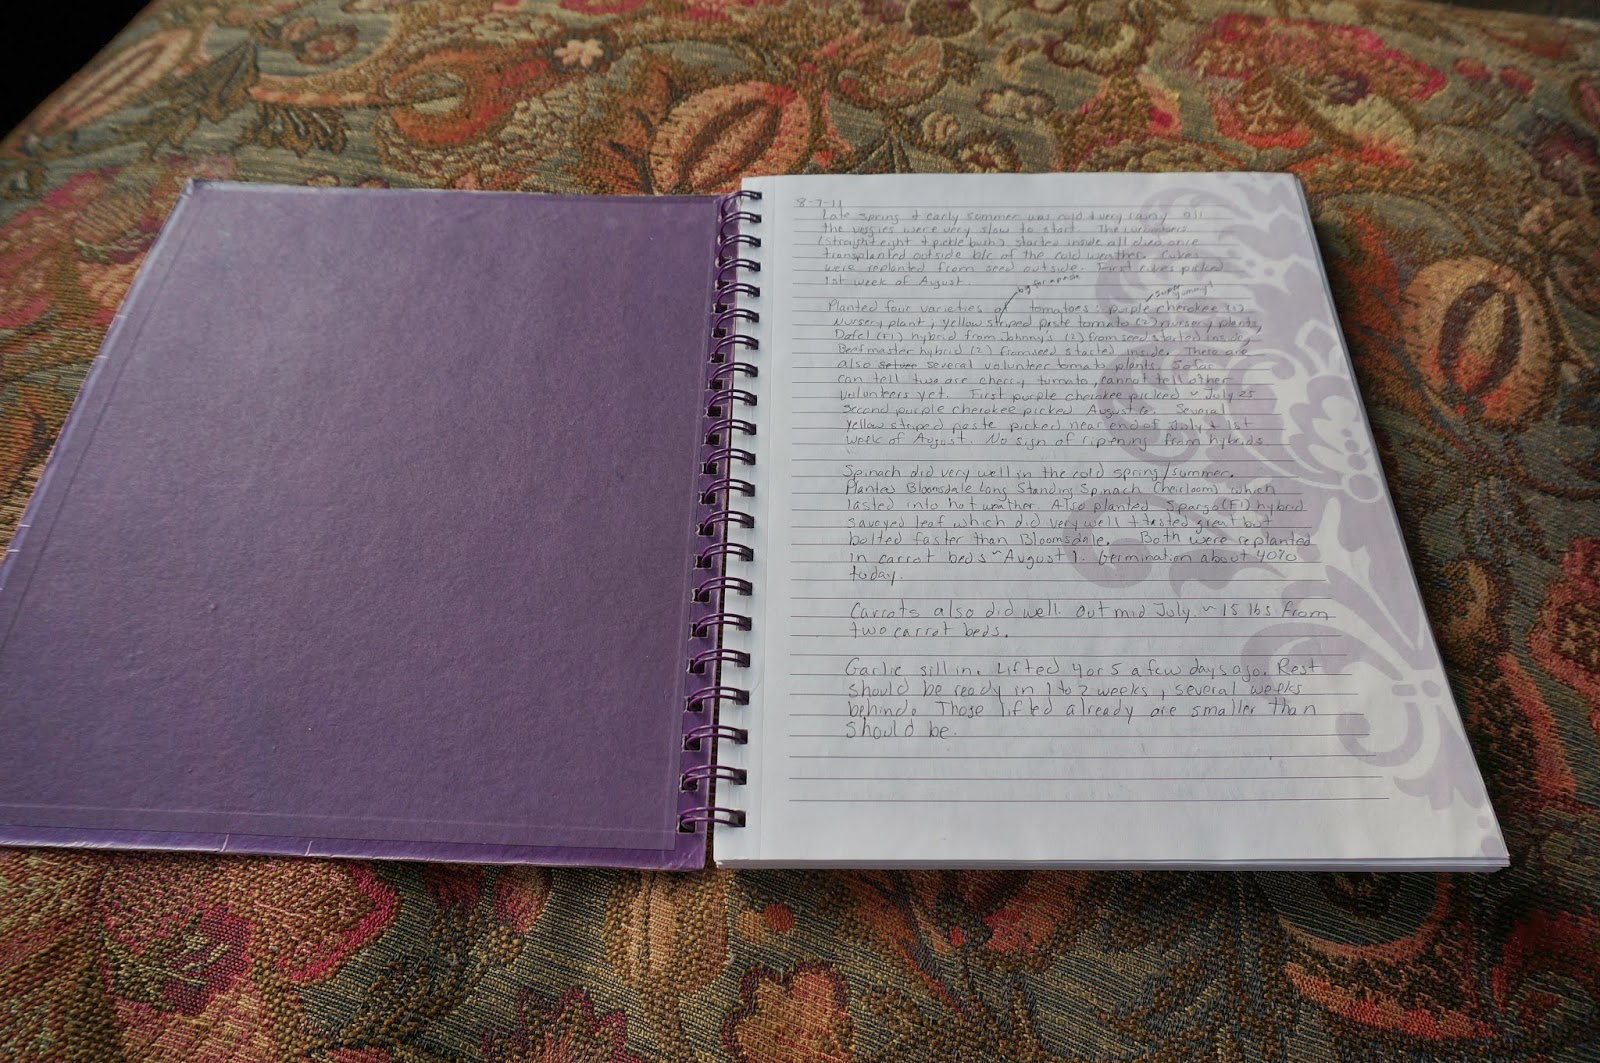 Plan for Spring planting with a garden journal